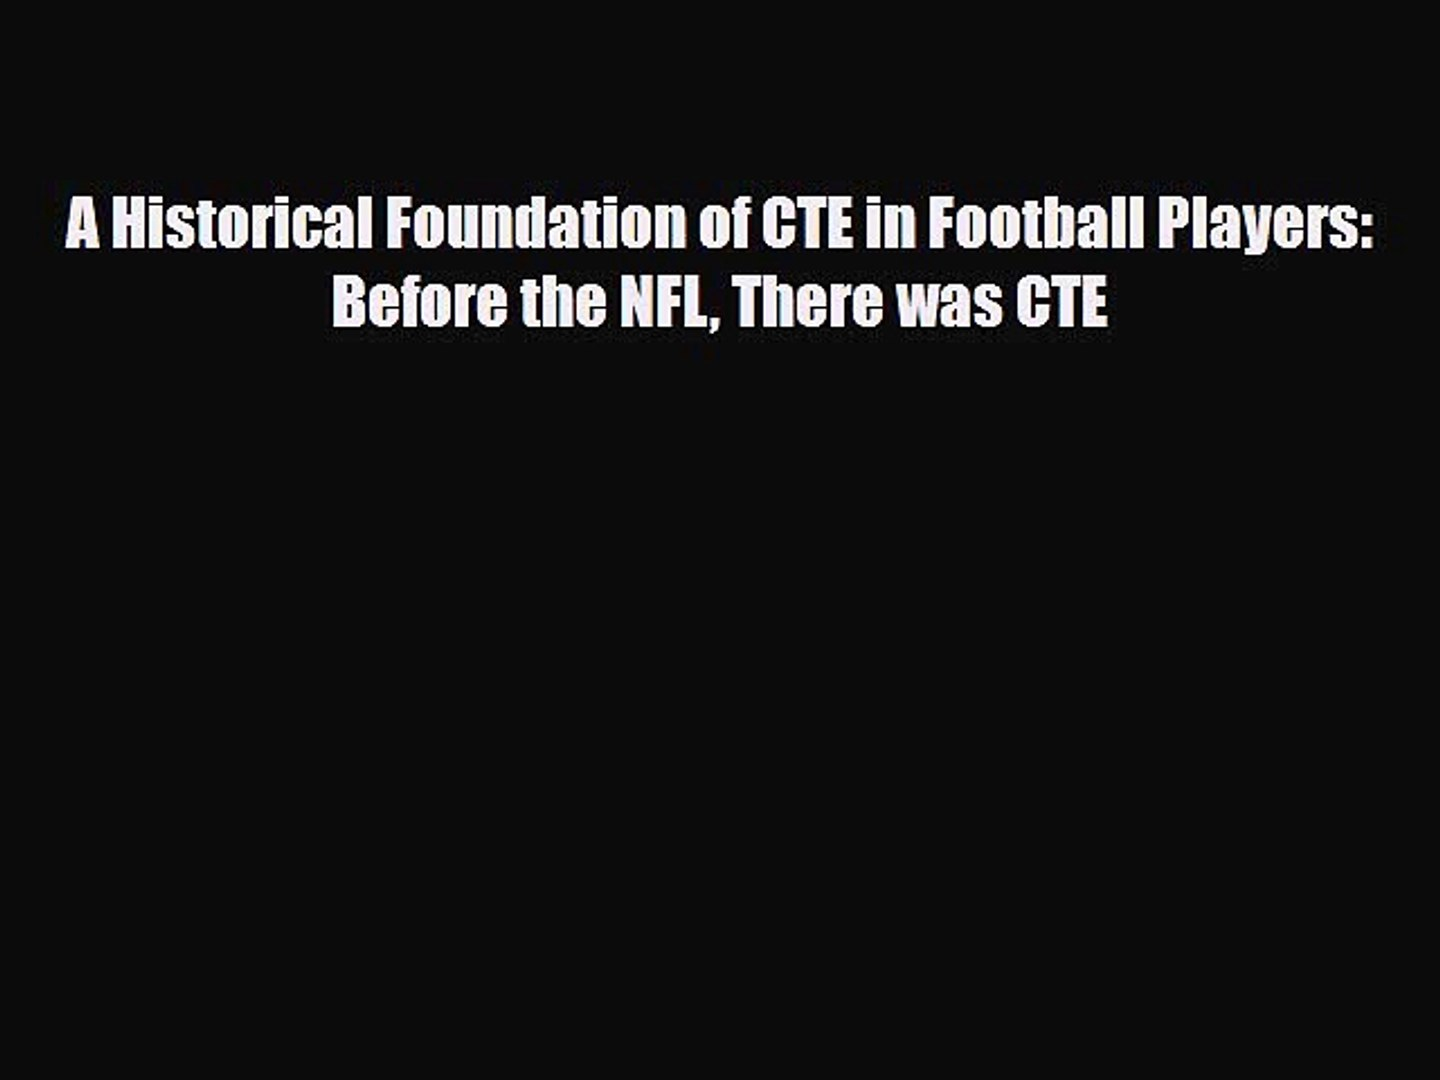 [PDF Download] A Historical Foundation of CTE in Football Players: Before the NFL There was